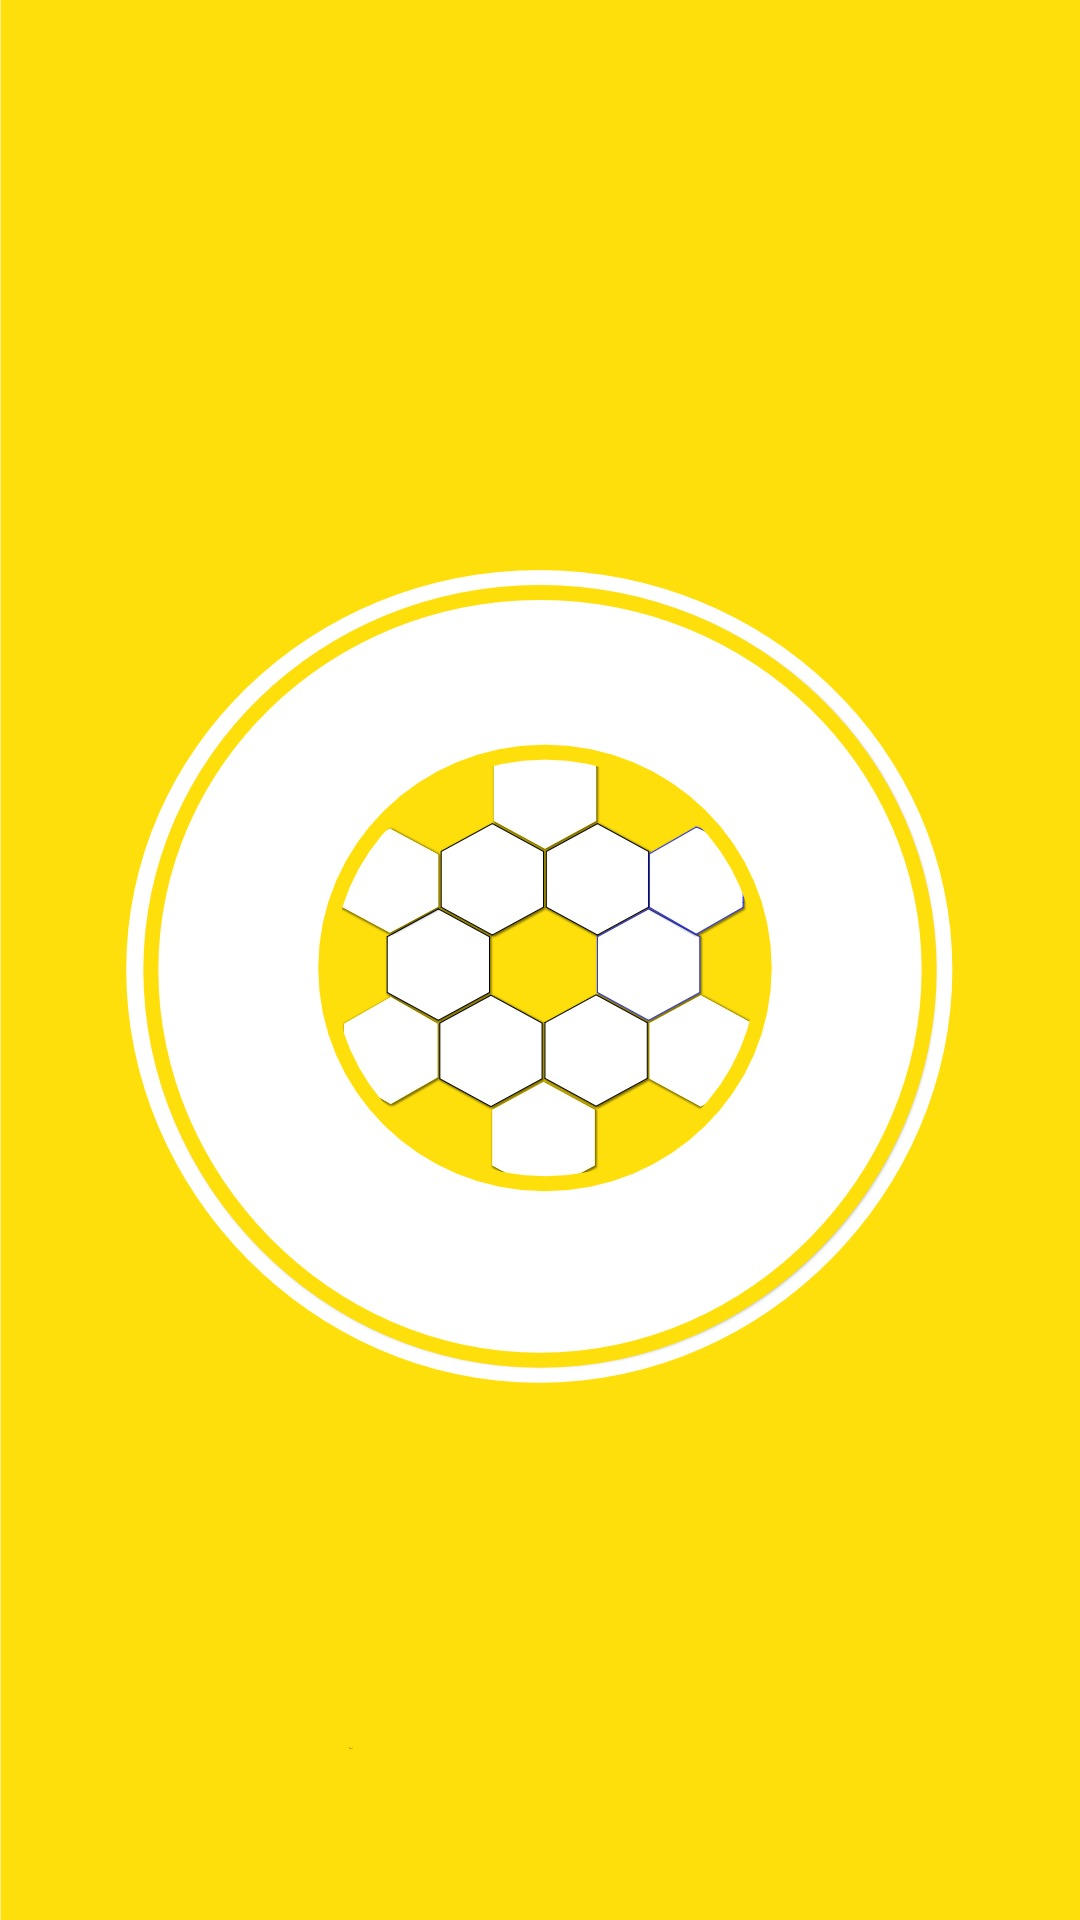 Instagram-cover-ball-yellow-lotnotes.com.jpg